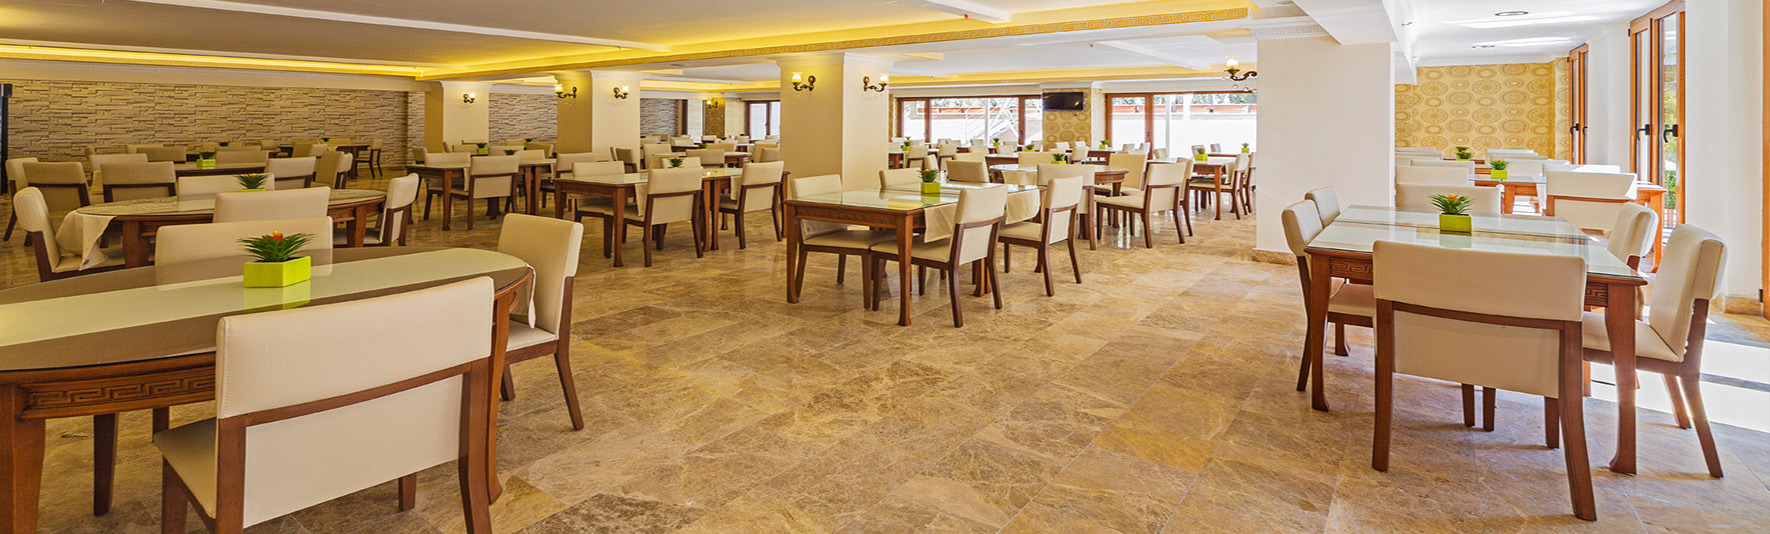 lausos palace tandır restaurant cafe breakfast coffe